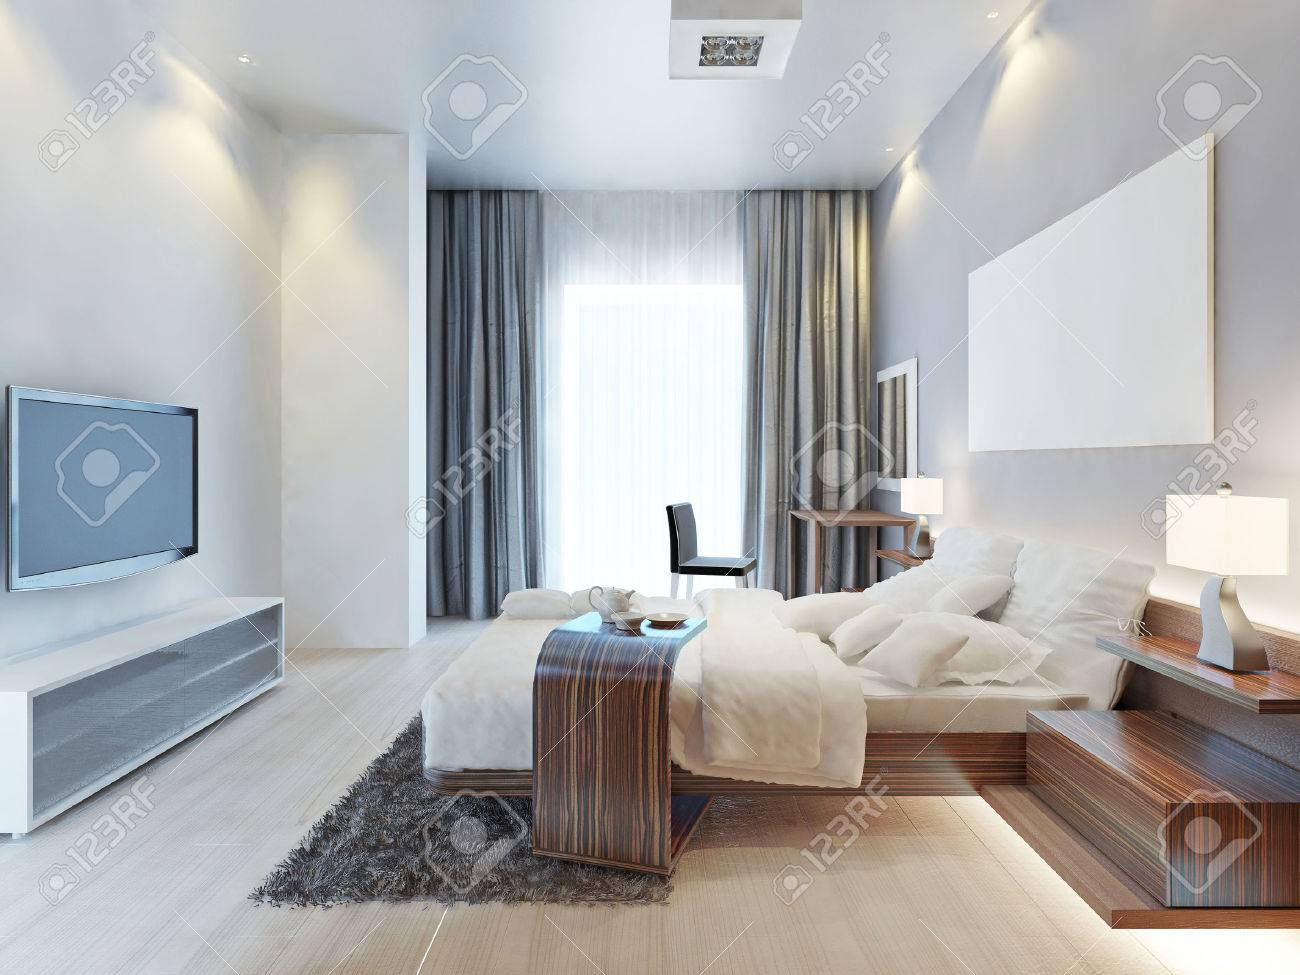 Design Bedroom Contemporary Style Room With Wooden Furniture